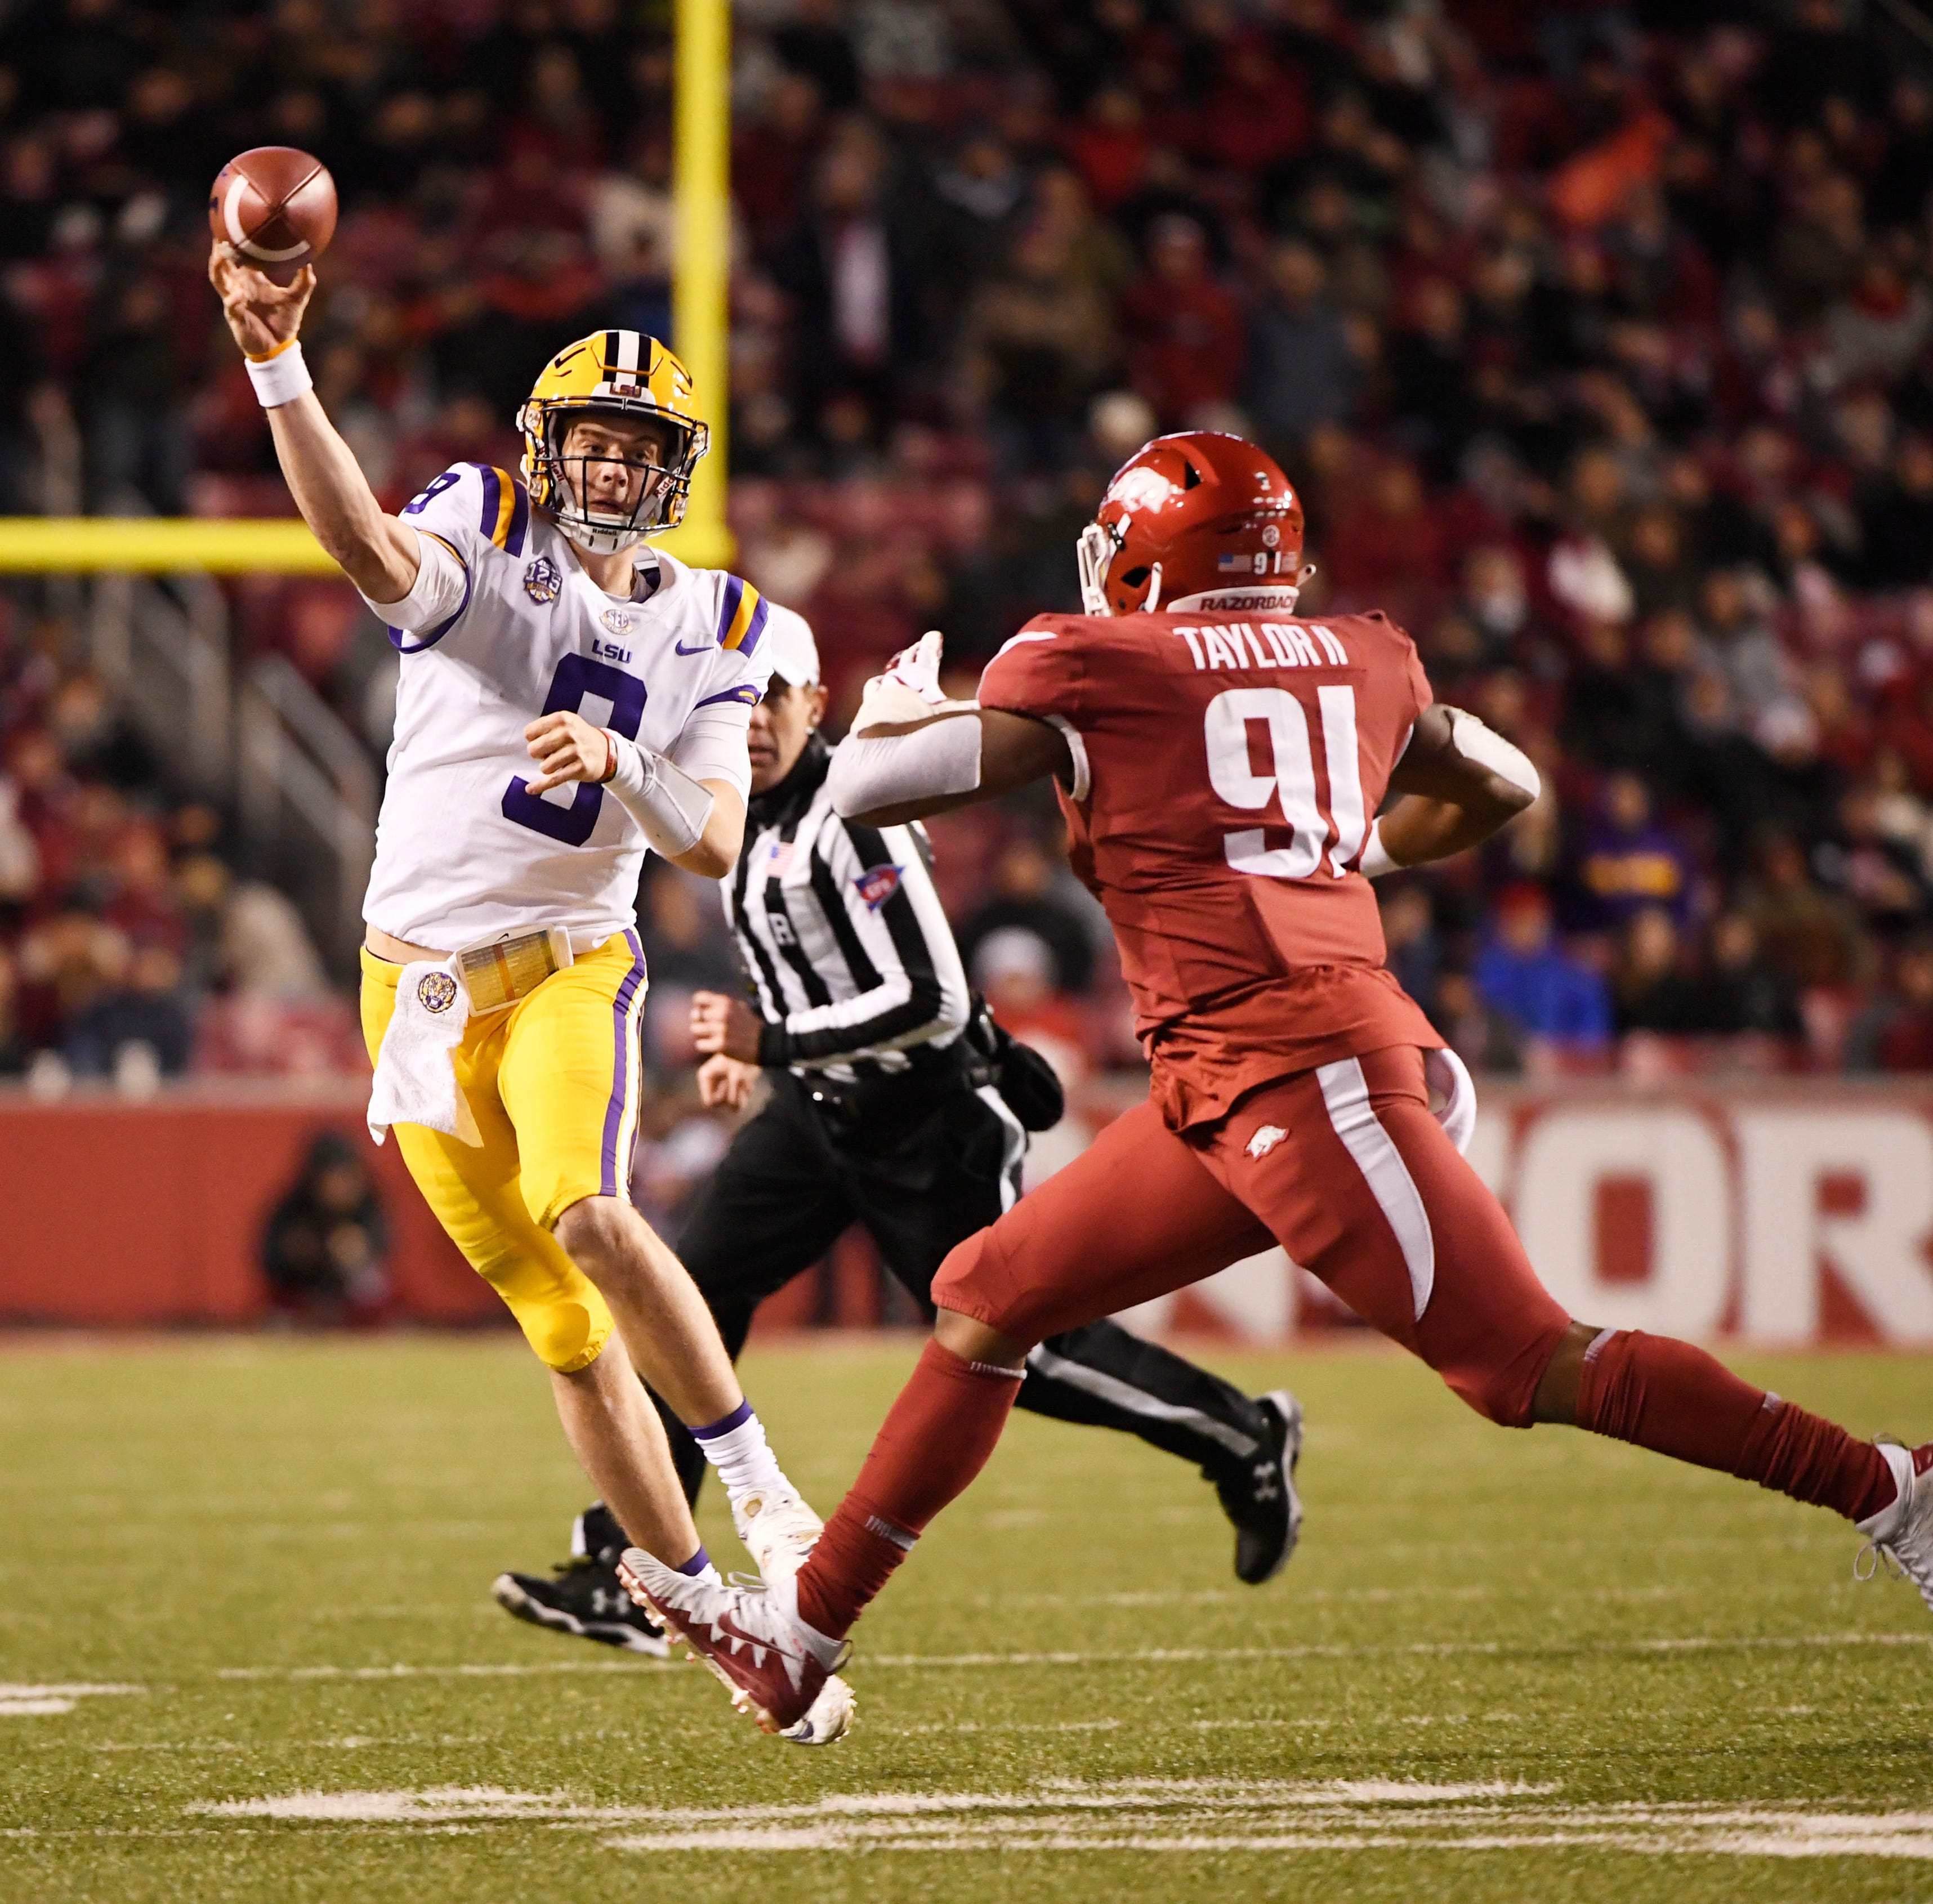 LSU bounces back with win at Arkansas